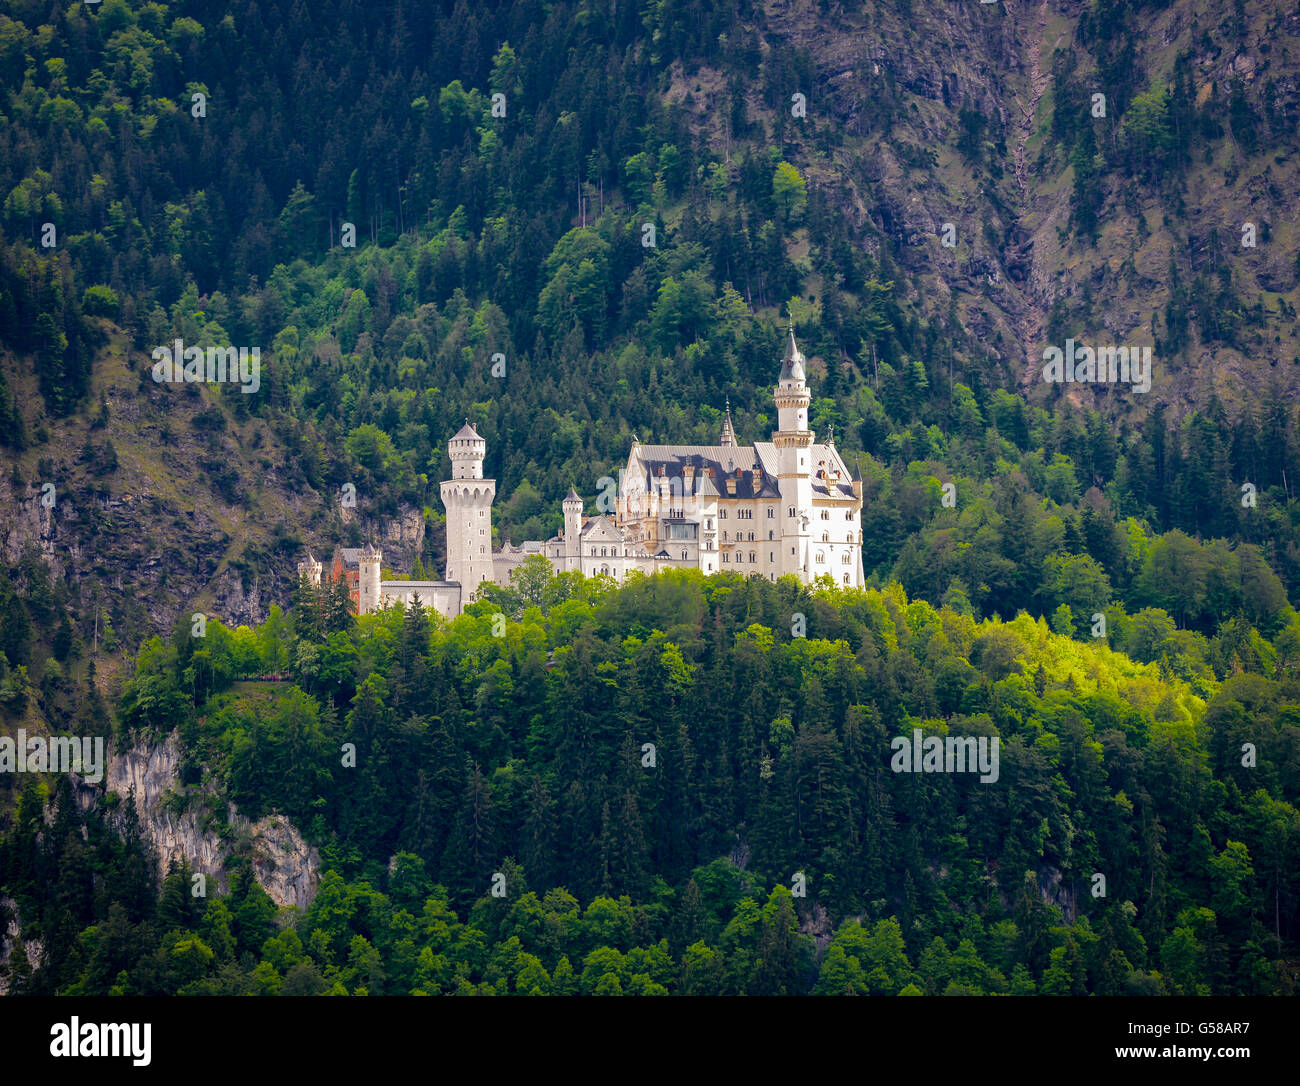 Beautiful view of world-famous Neuschwanstein Castle, the 19th century Romanesque Revival palace built for King Stock Photo